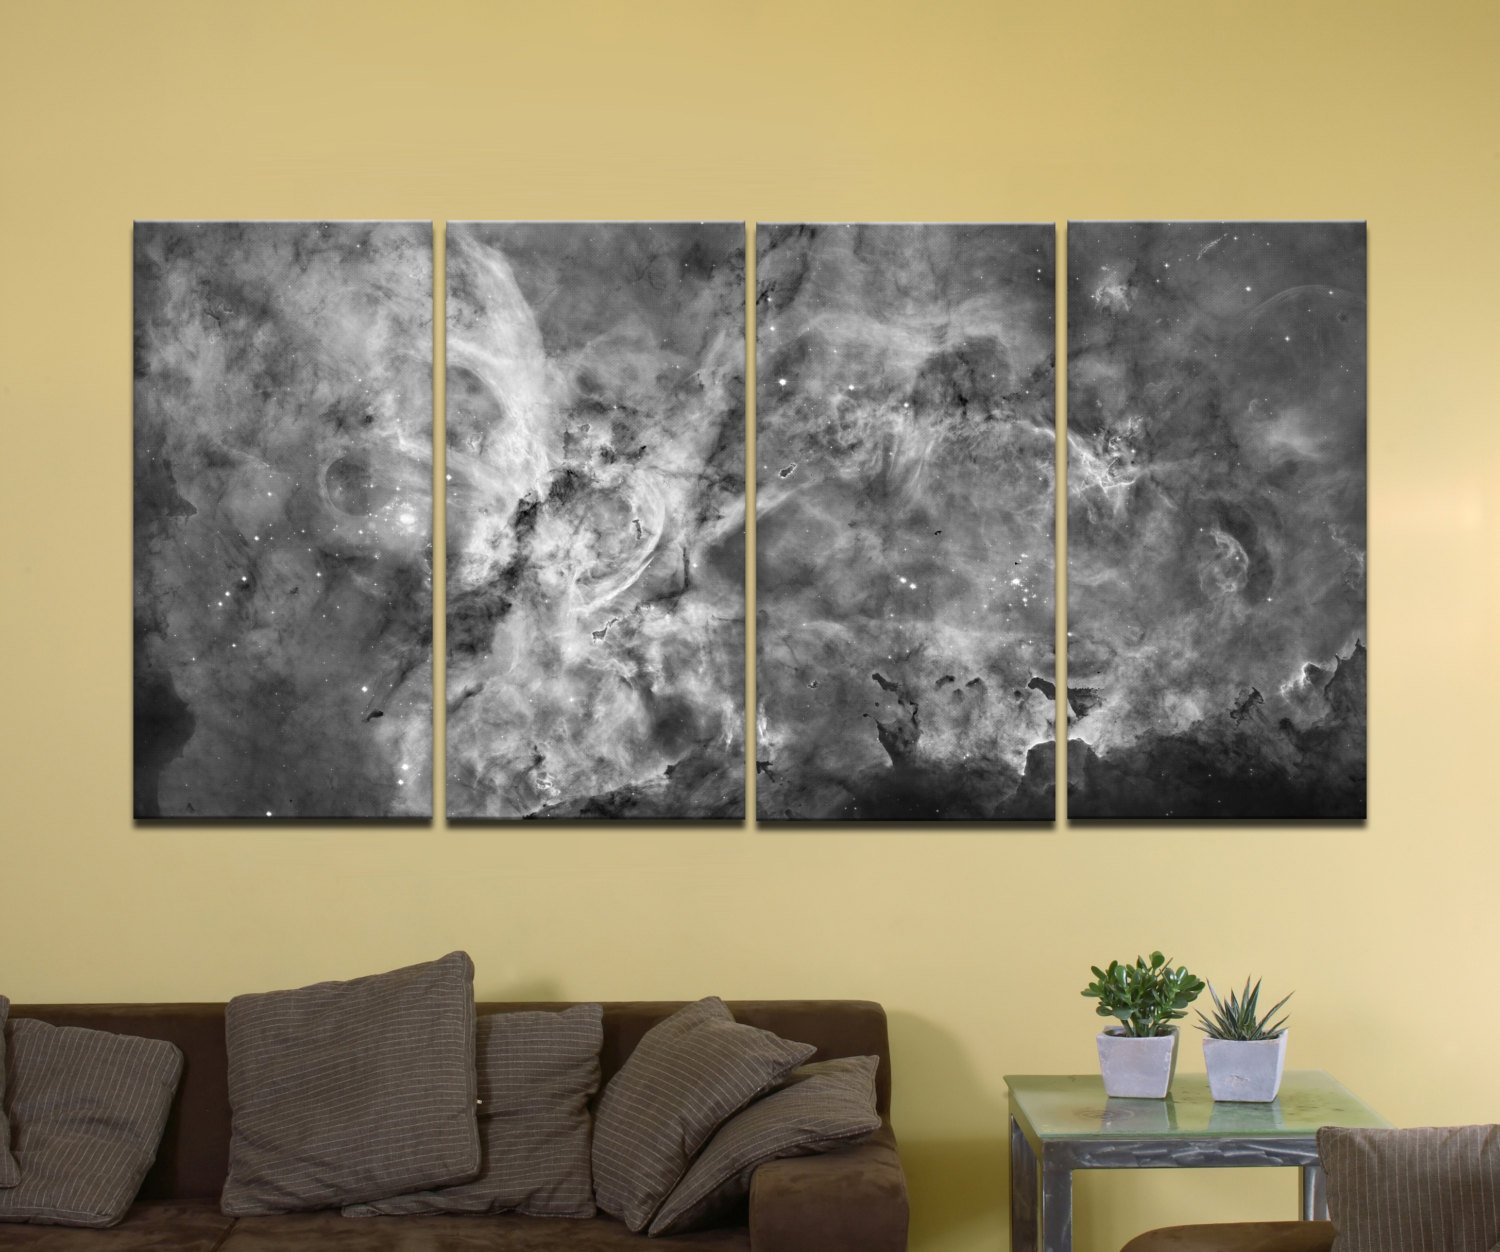 "The Carina Nebula, Star Birth in the Extreme (Grayscale) - 72"" x 36"", 4-Piece Split Canvas Wall Mural"